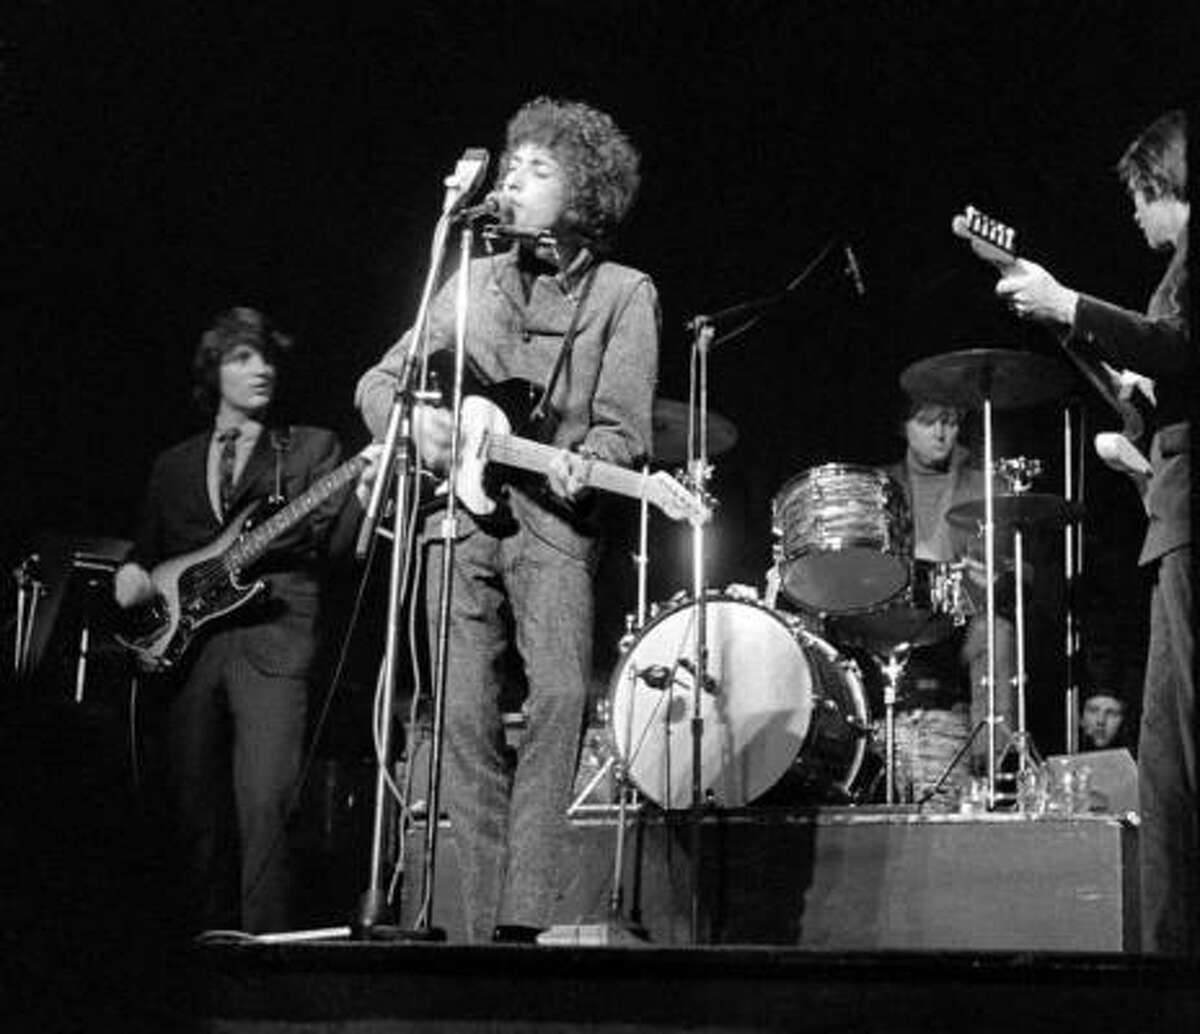 Dylan with the Band (Houstonian Mickey Jones sitting in on drums for Levon Helm) on the controversial 1966 acoustic/electric tour.